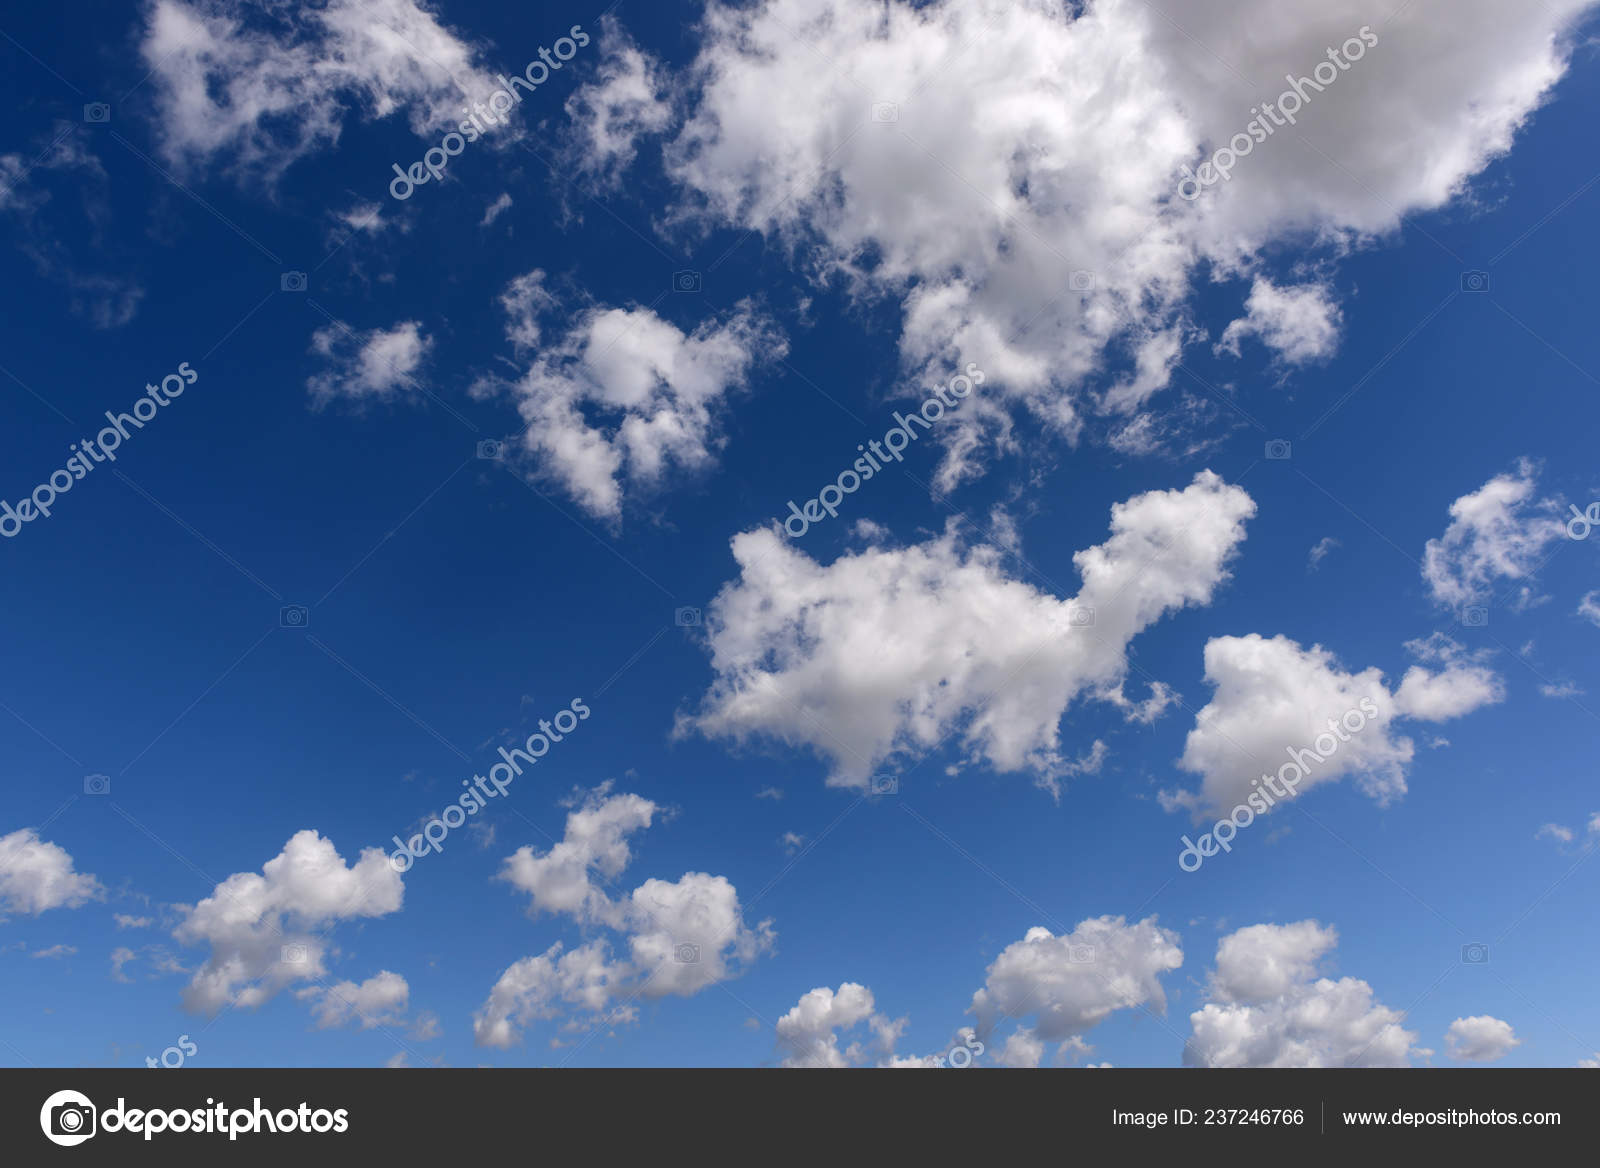 Beautiful White Clouds Blue Sky Color Shade Gradient White Blue Stock Photo C Ikurucan 237246766